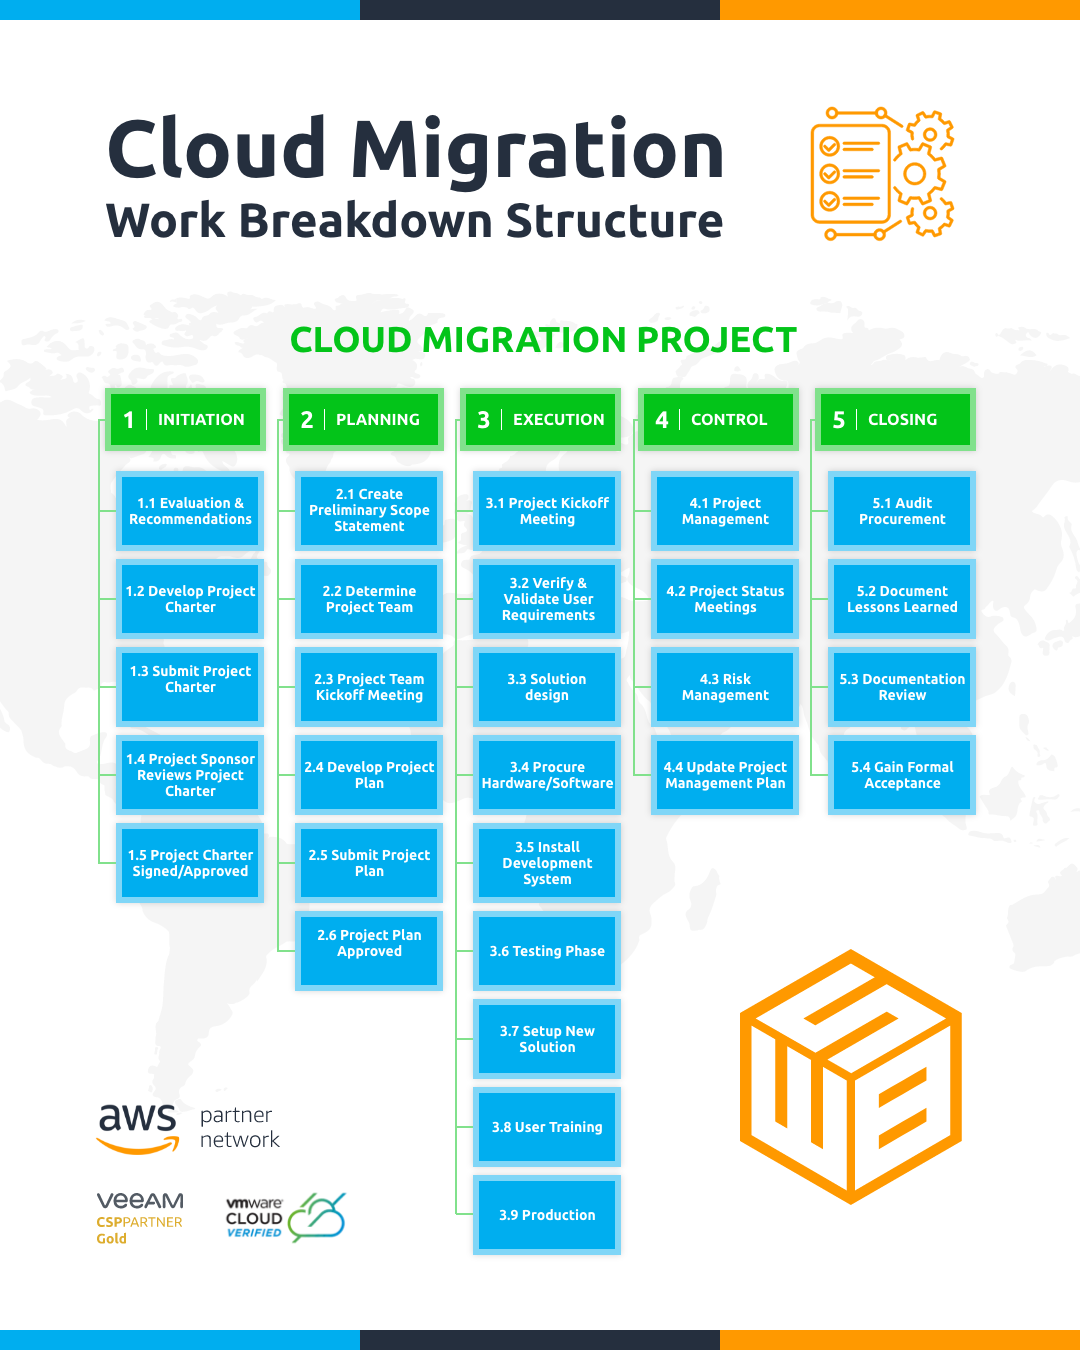 Work Breakdown Structure in Cloud Migration Projects